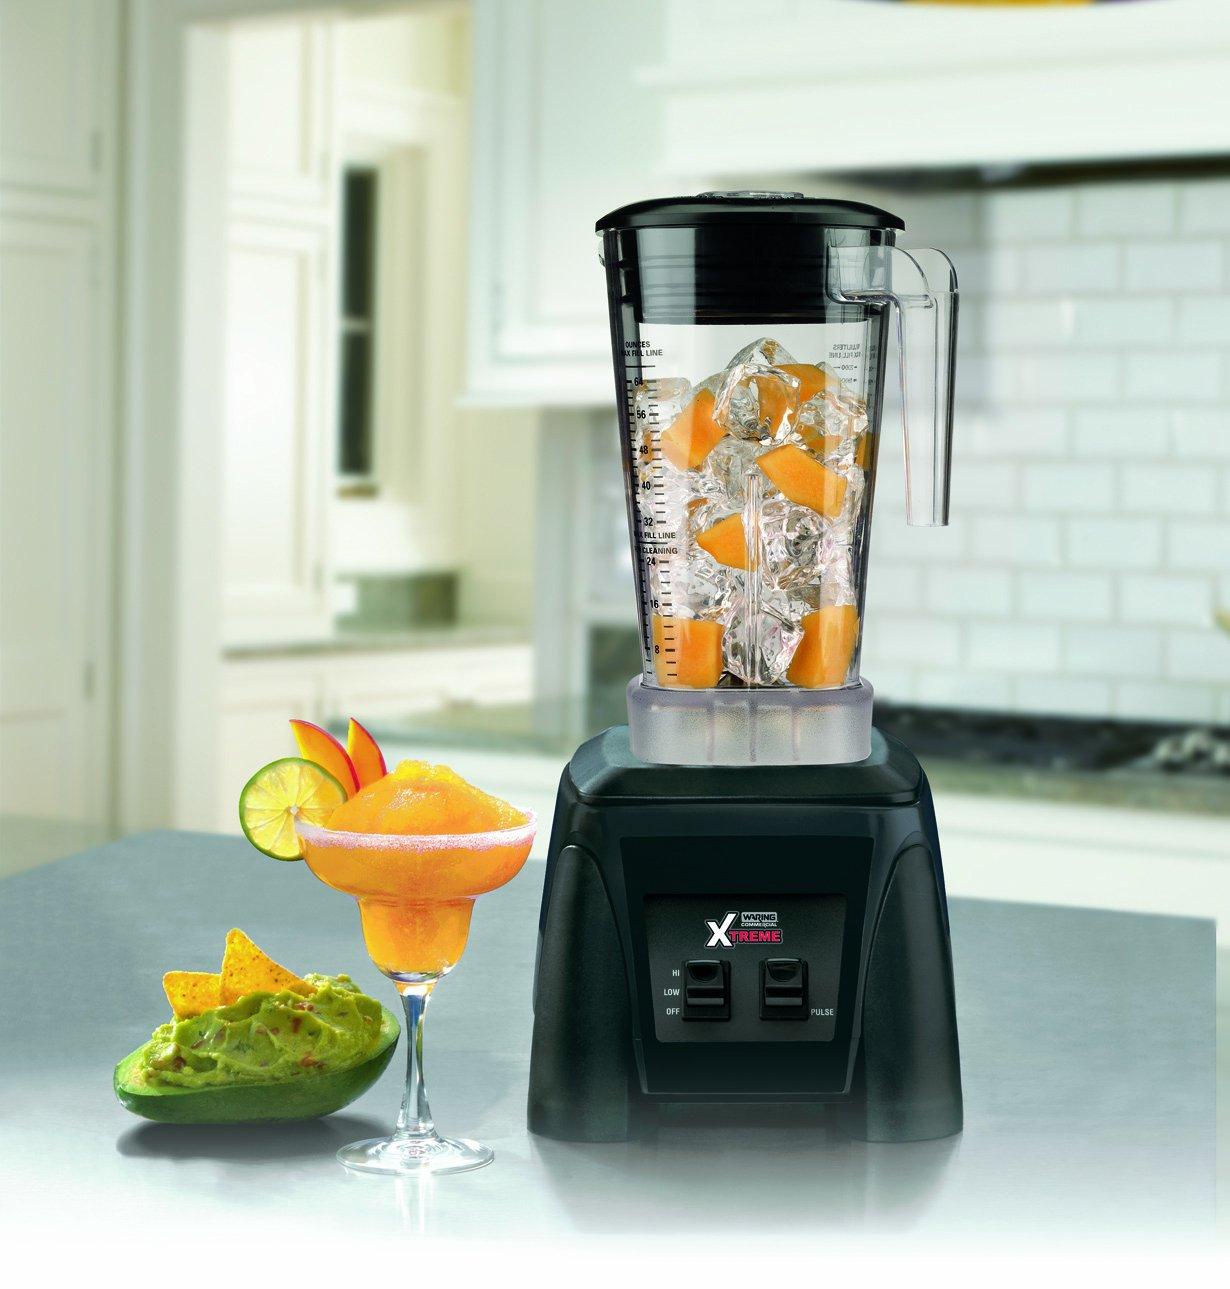 Waring Pro MX1000R Blender Review